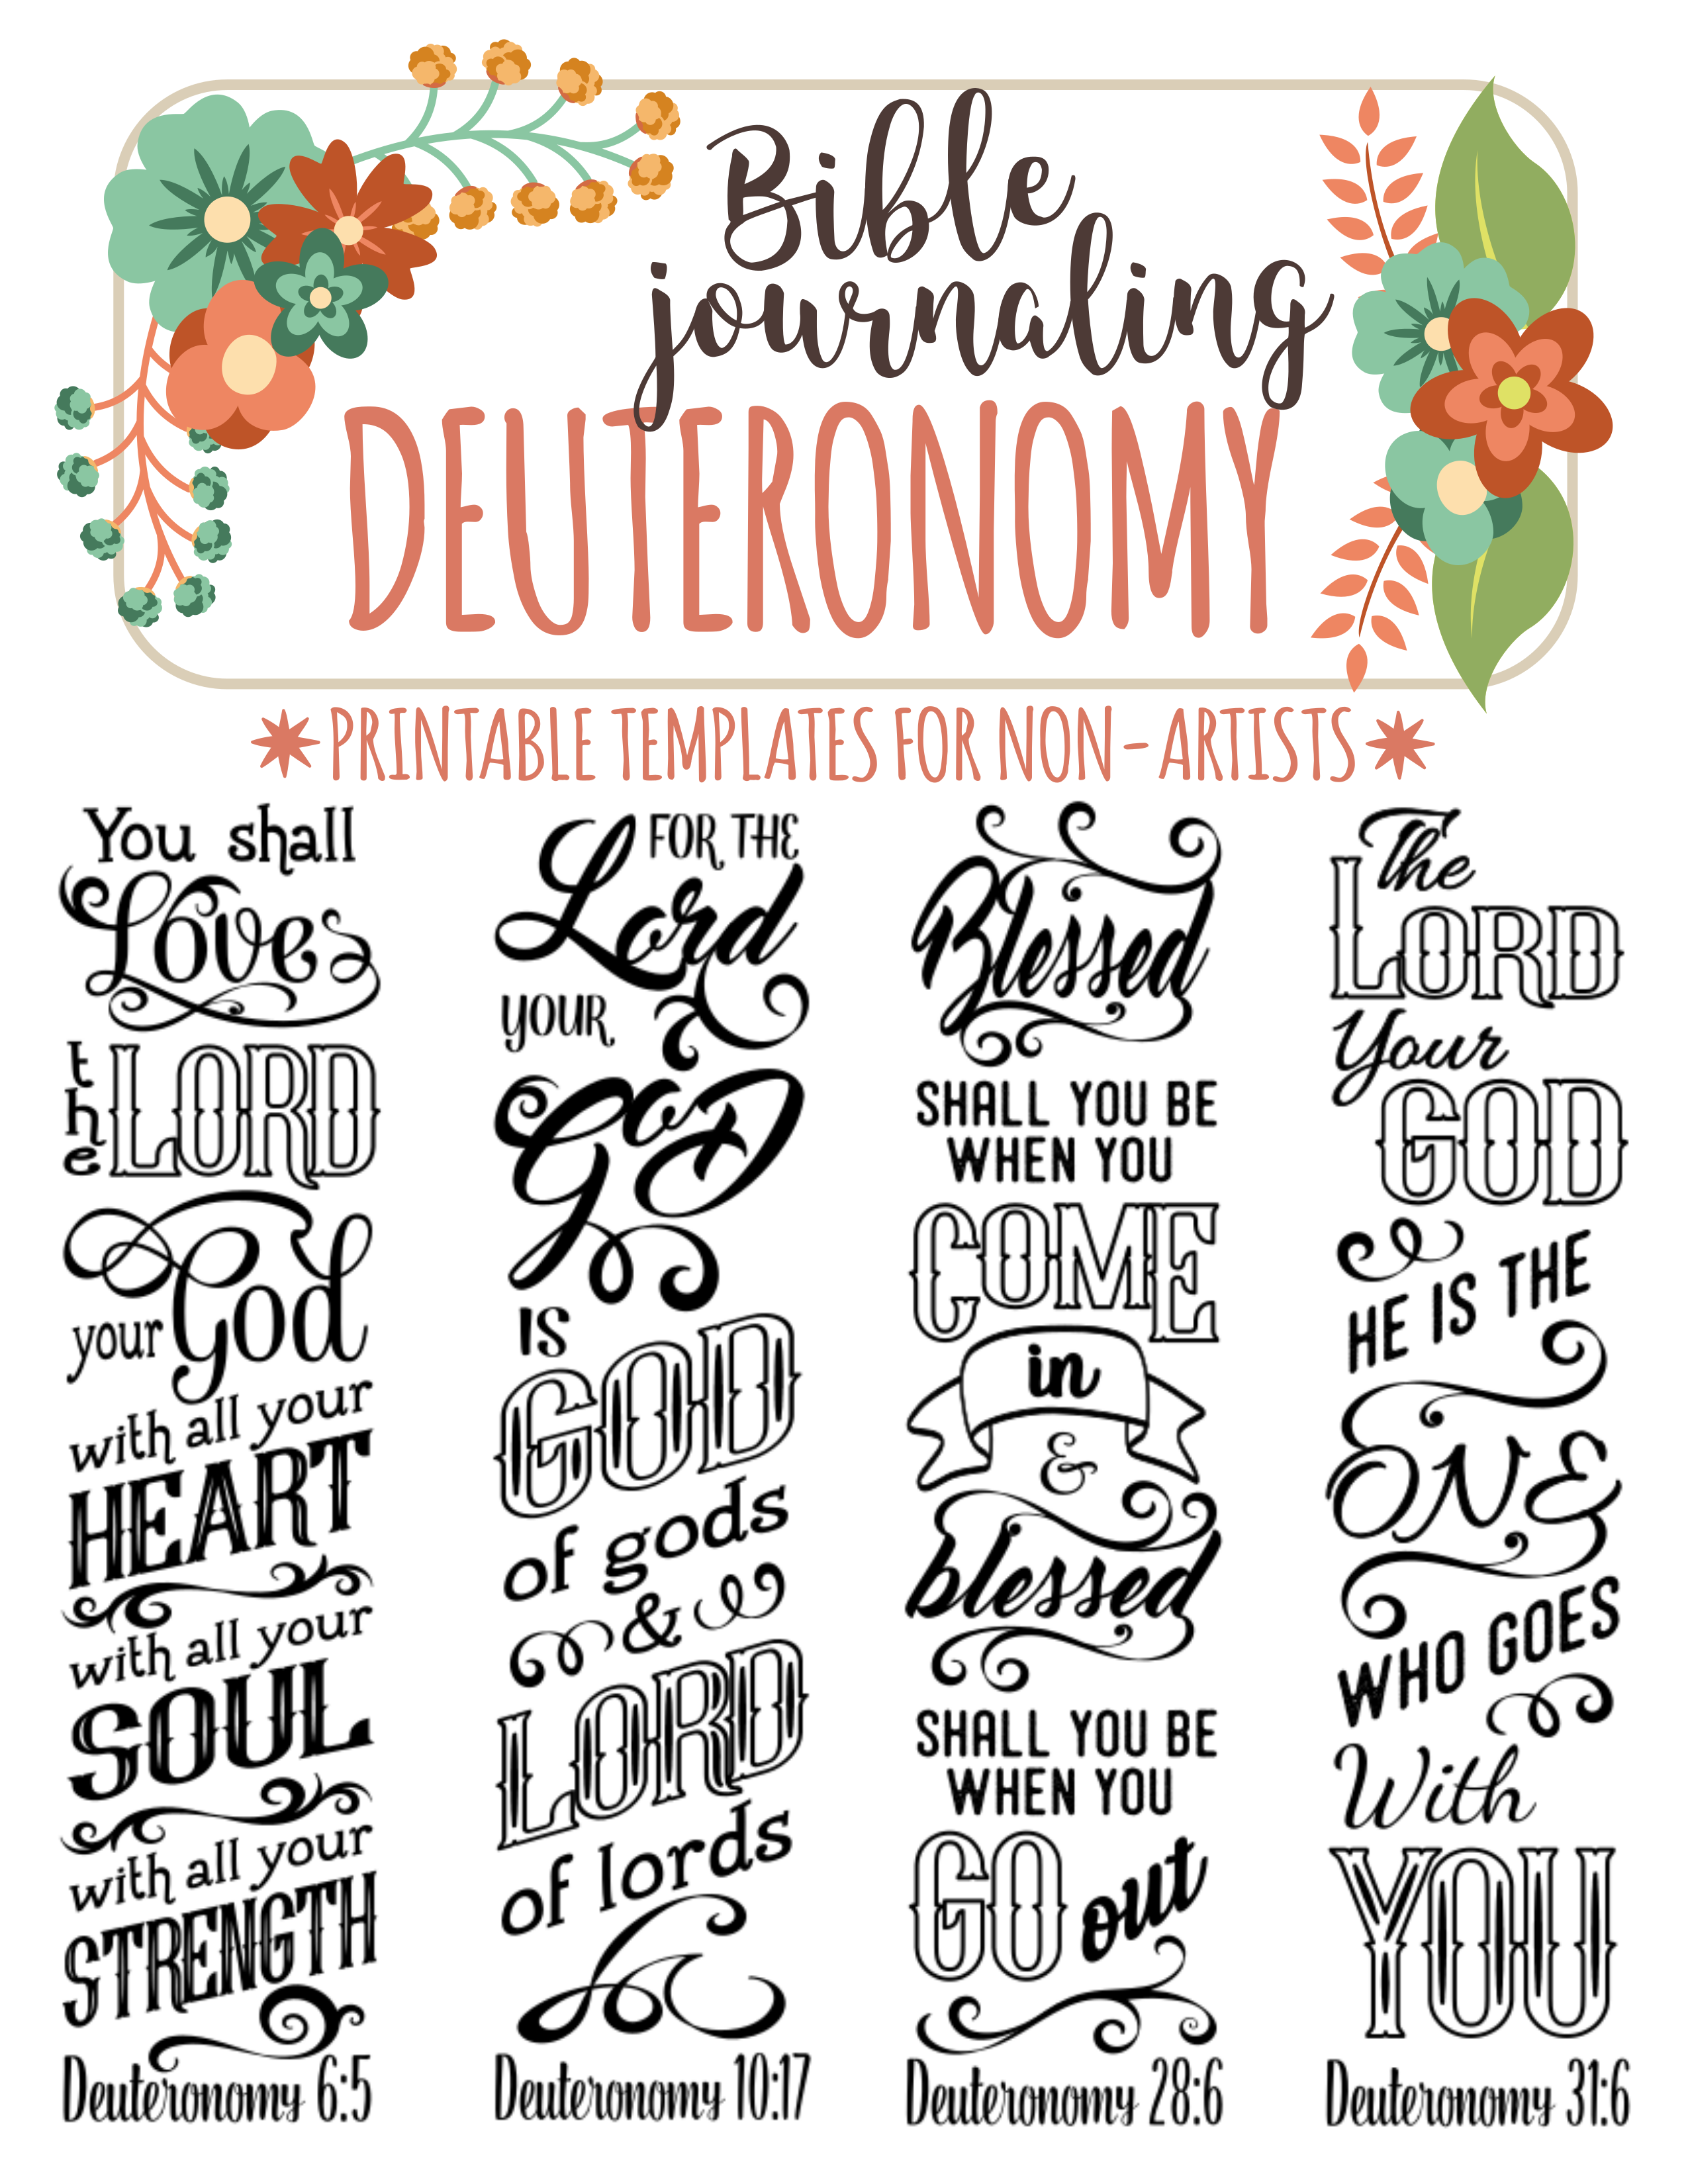 DEUTERONOMY Printable Bible Journaling Templates For Non Artists Just PRINT TRACE